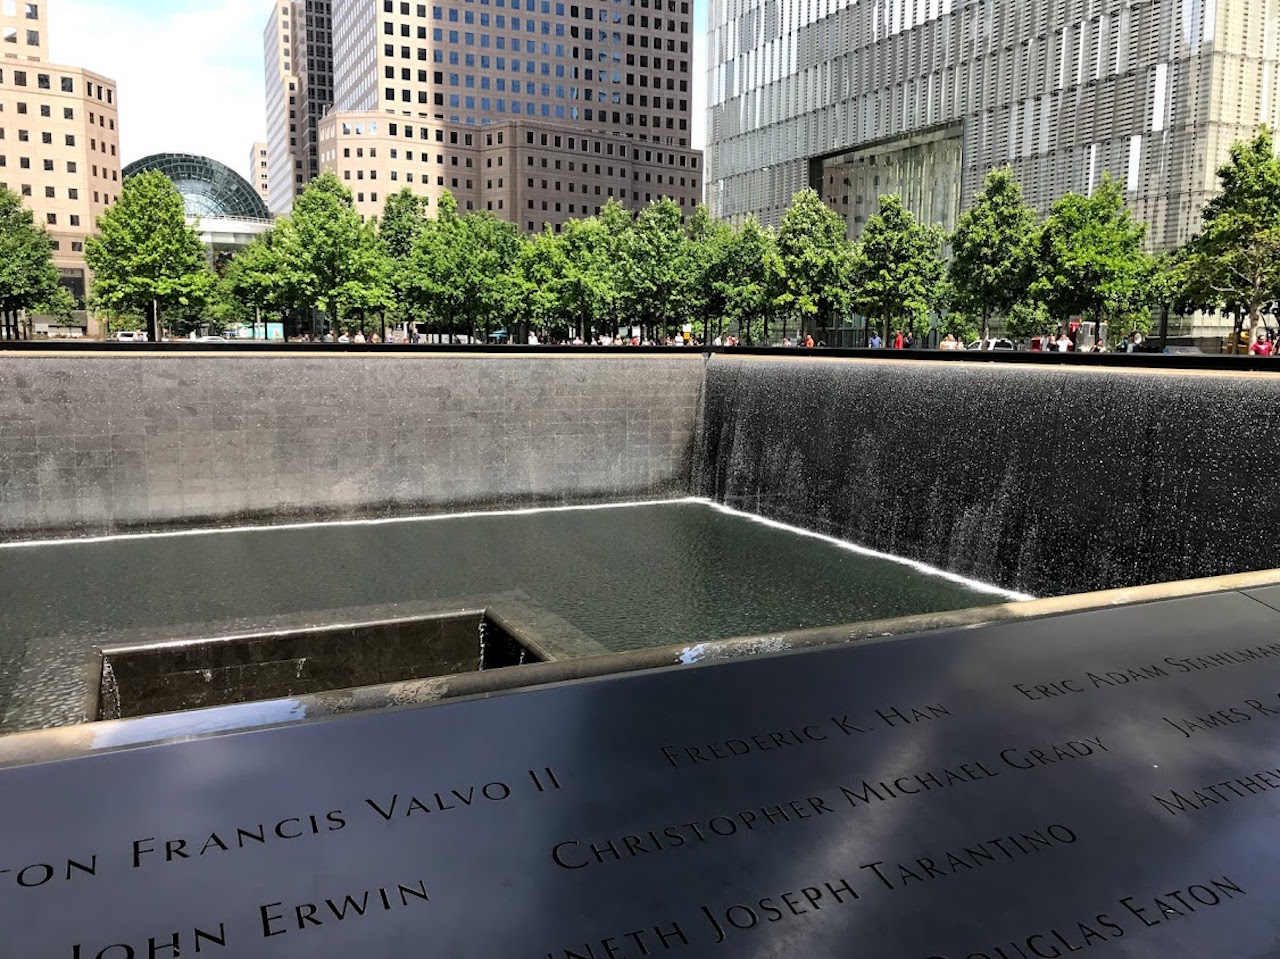 5-dage-i-new-york-9/11-memorial